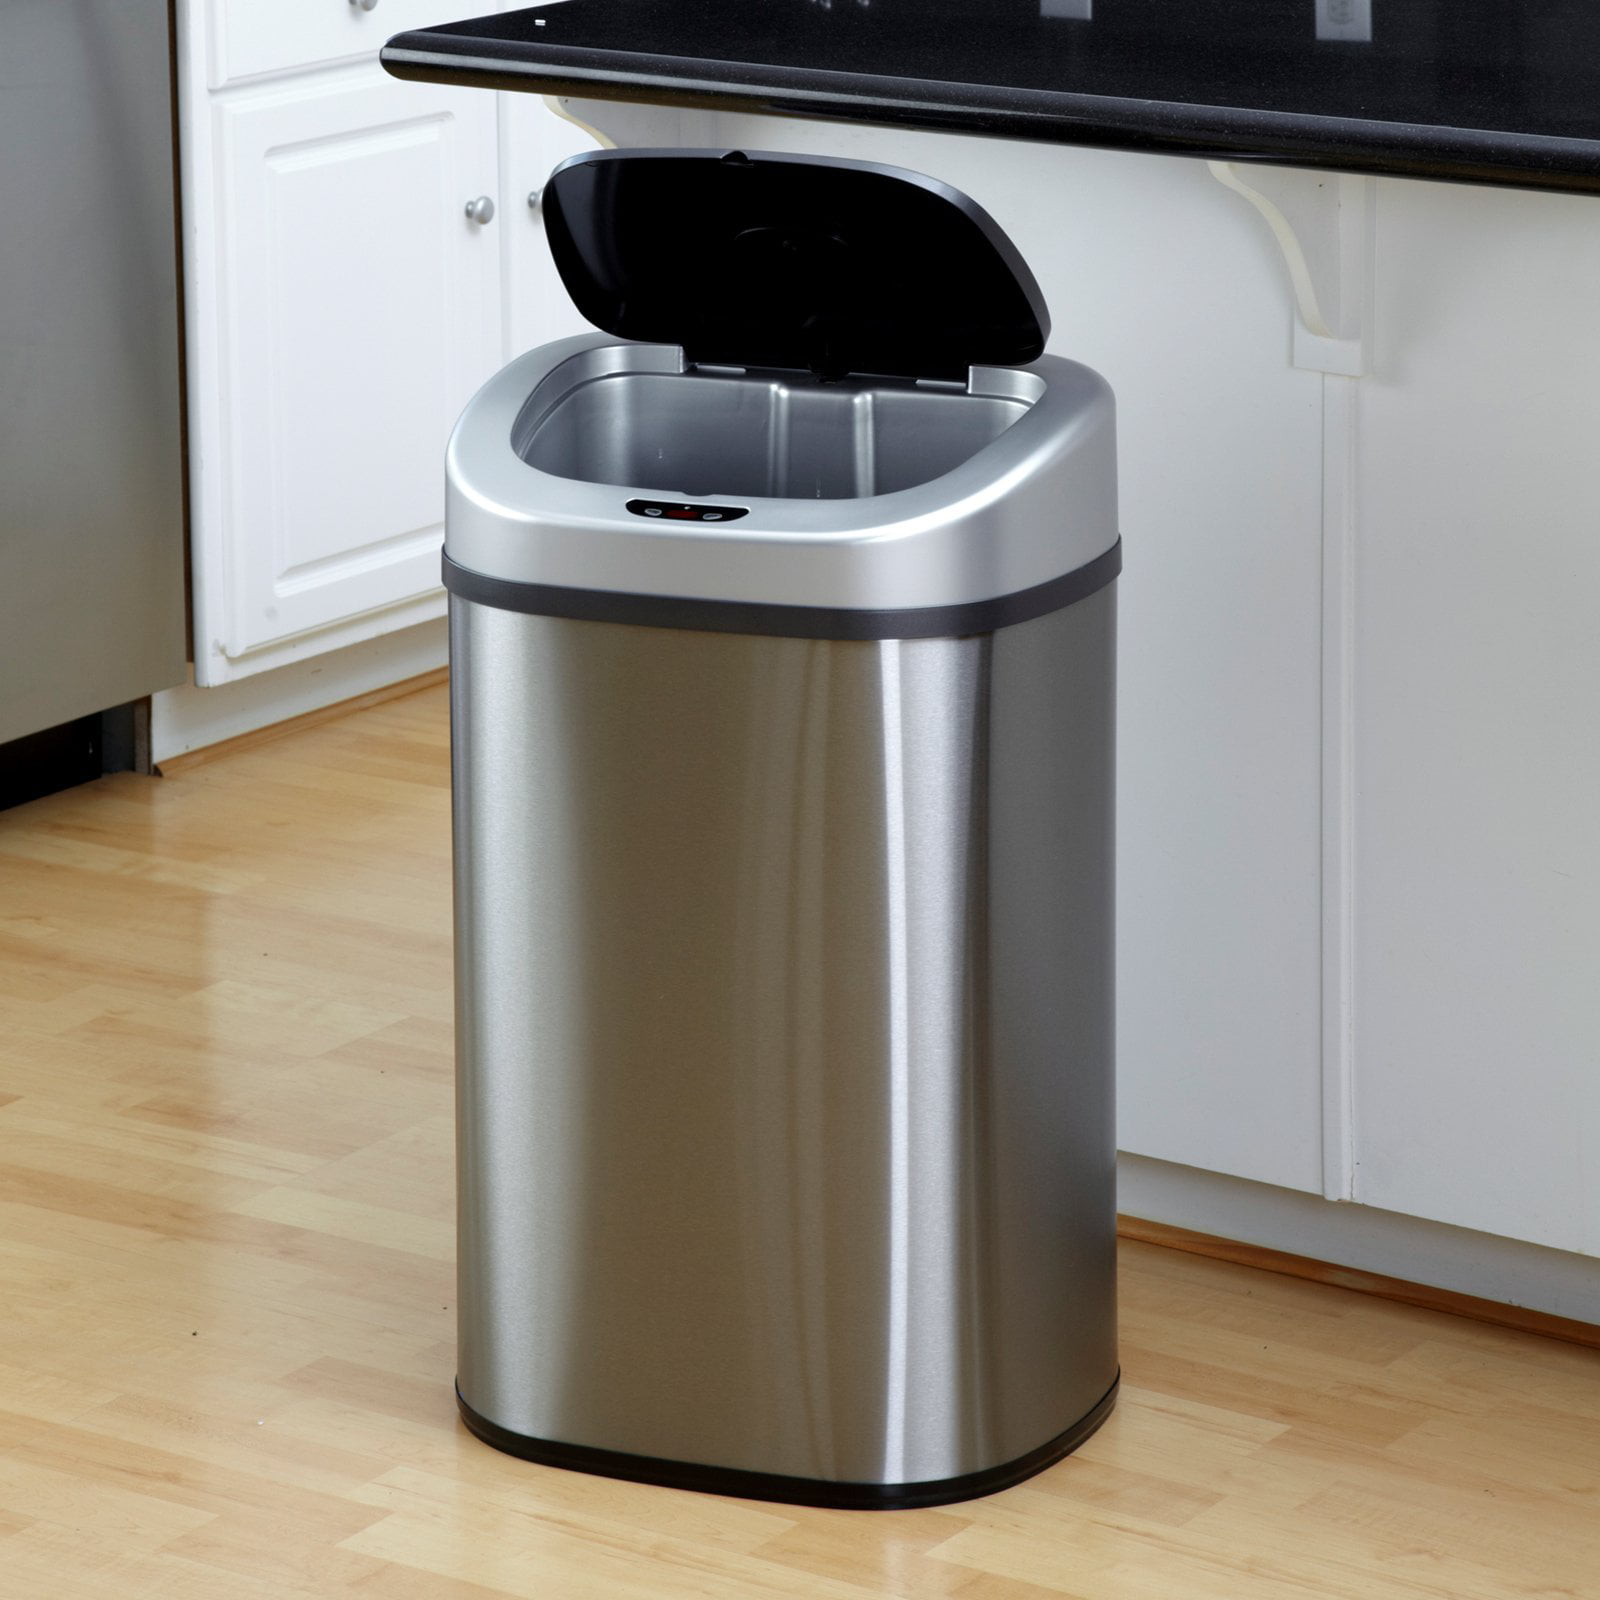 Nine Stars DZT-80-4 Touchless Stainless Steel 21.1 Gallon Trash Can by Overstock